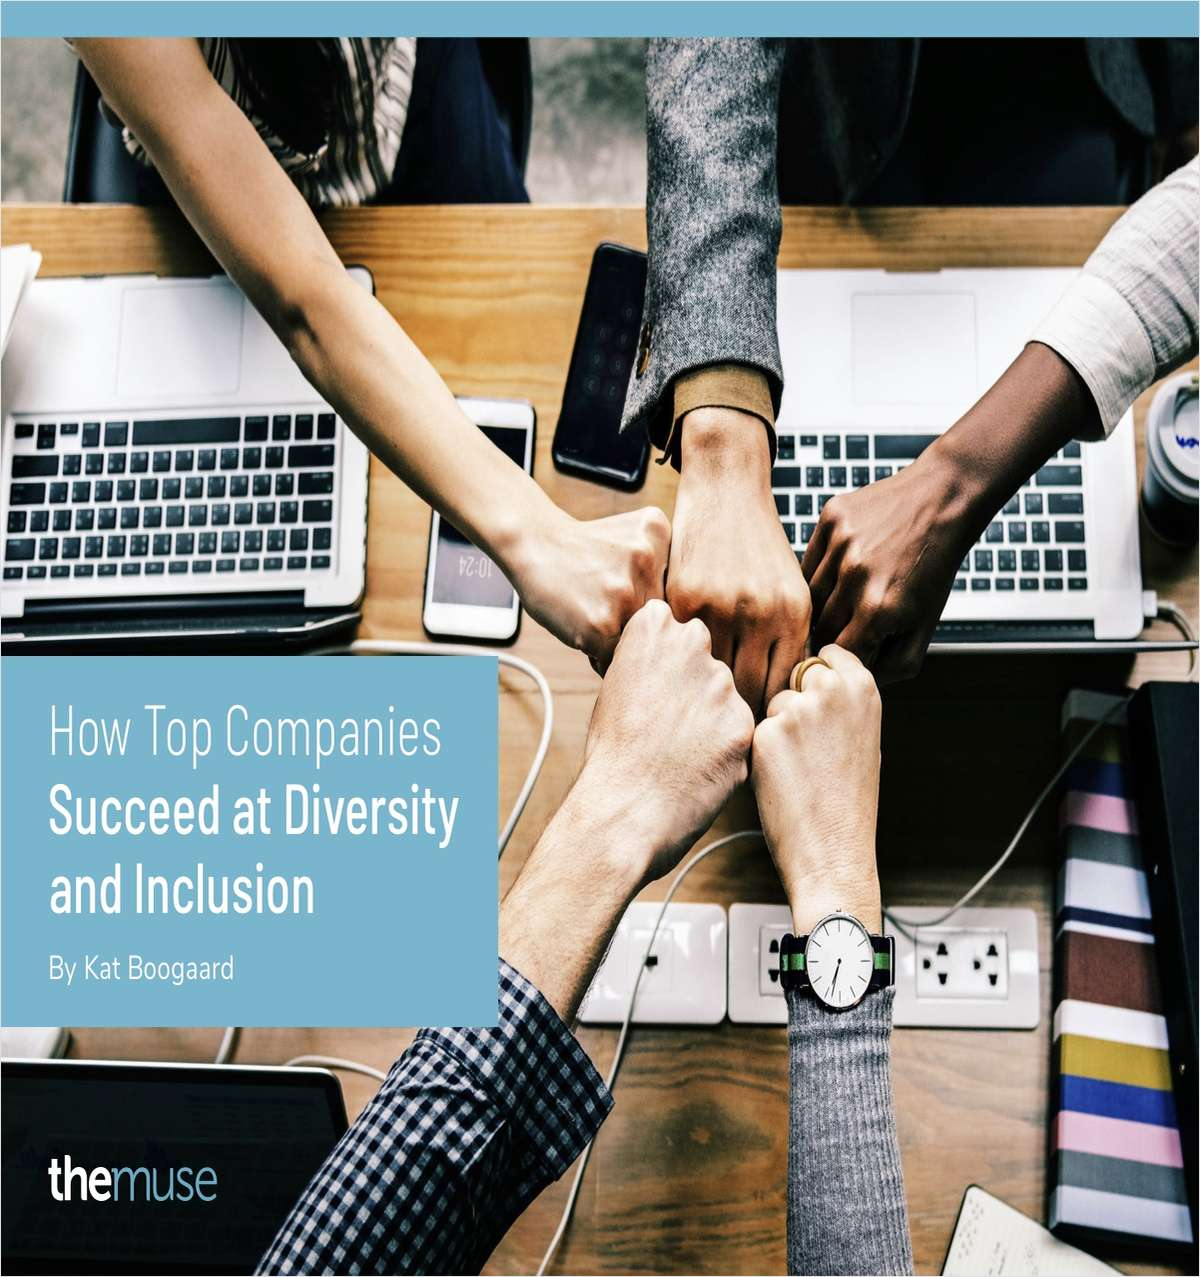 How Top Companies Succeed at Diversity and Inclusion